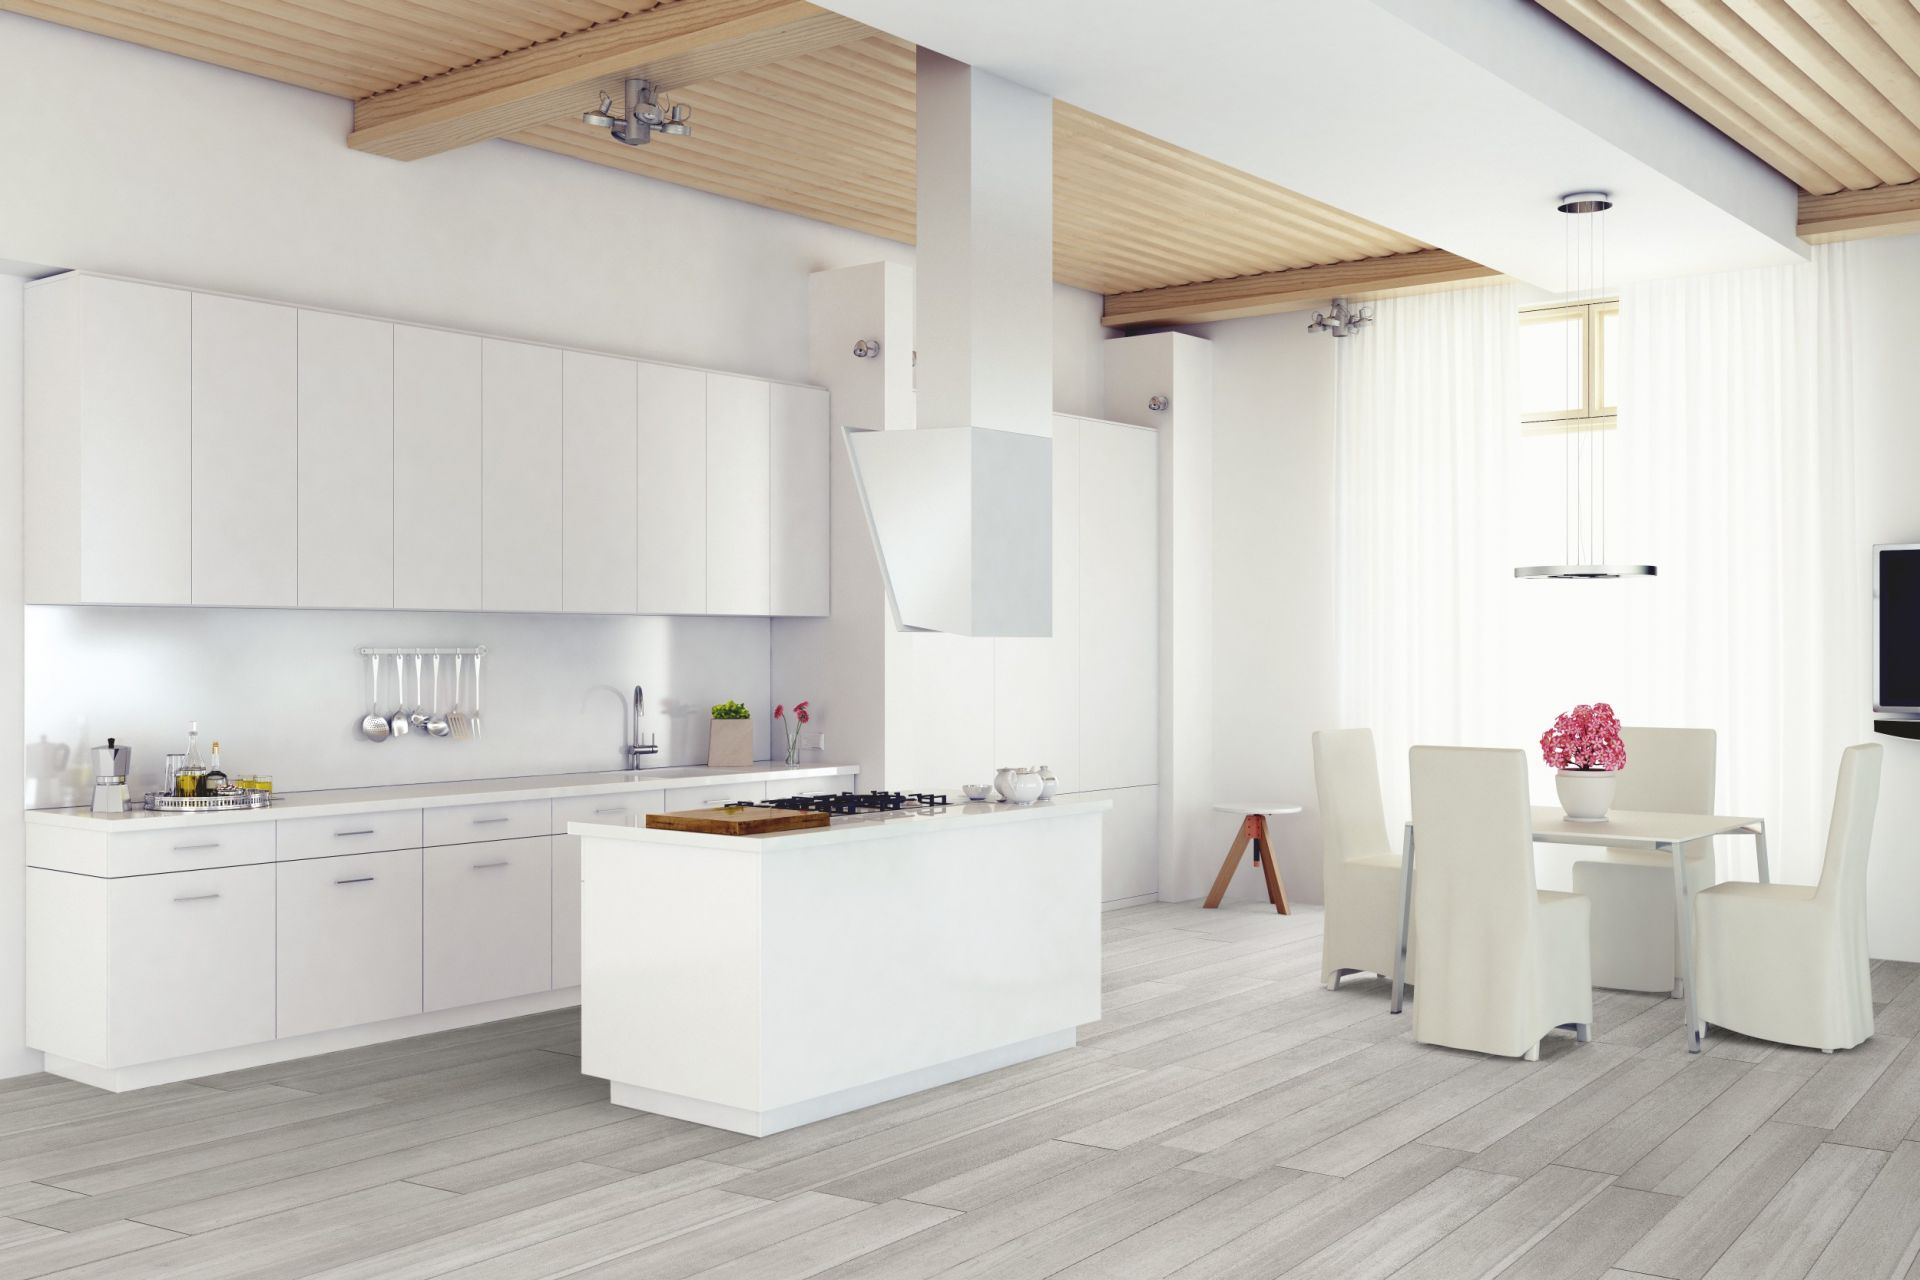 woodtime-tile=series-oyster